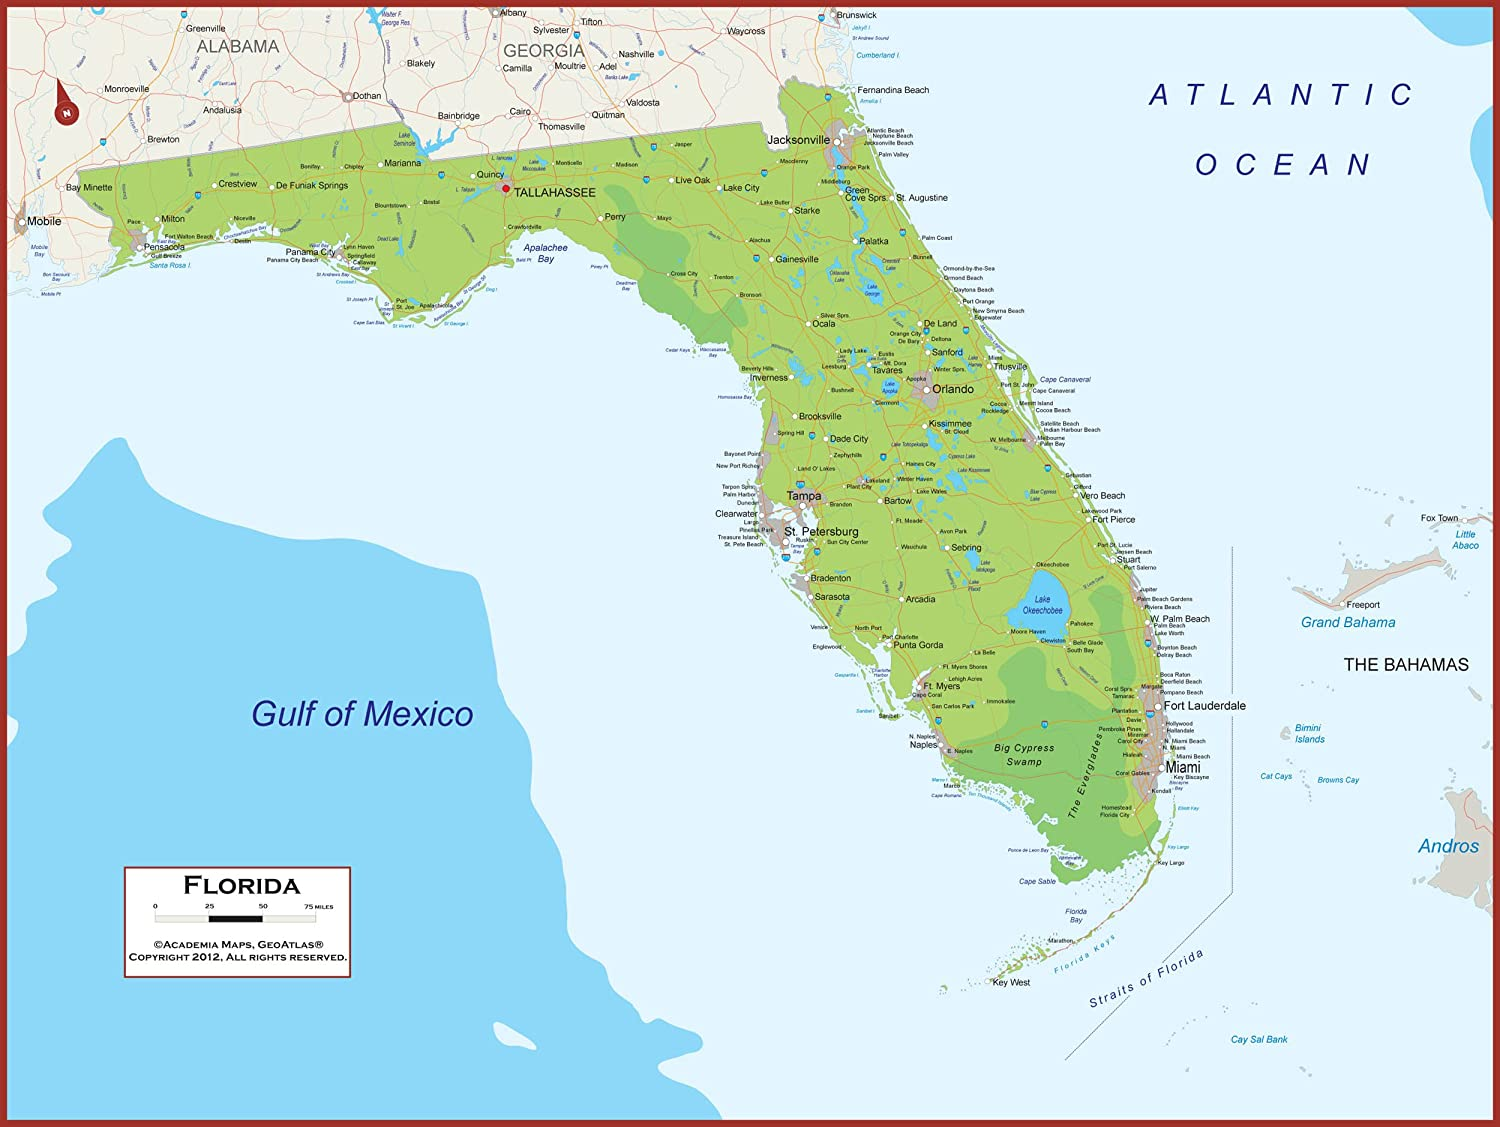 Florida Wall Map Poster With Topography 36 X 27 Classroom Style Map With Durable Lamination Safe For Use With Wet Dry Erase Marker Brass